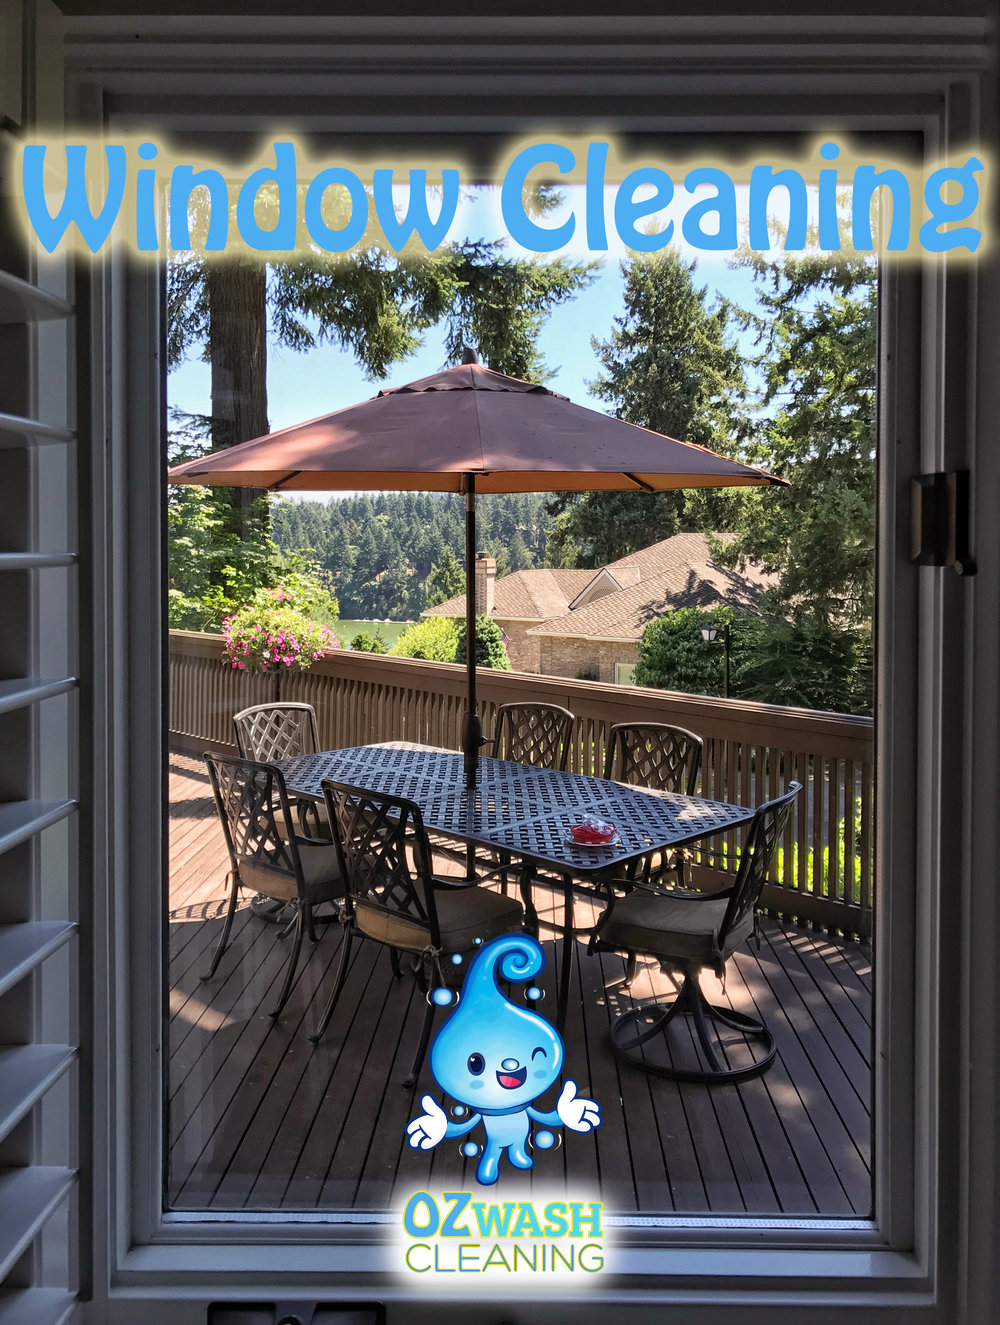 WindowCleaning8.jpg